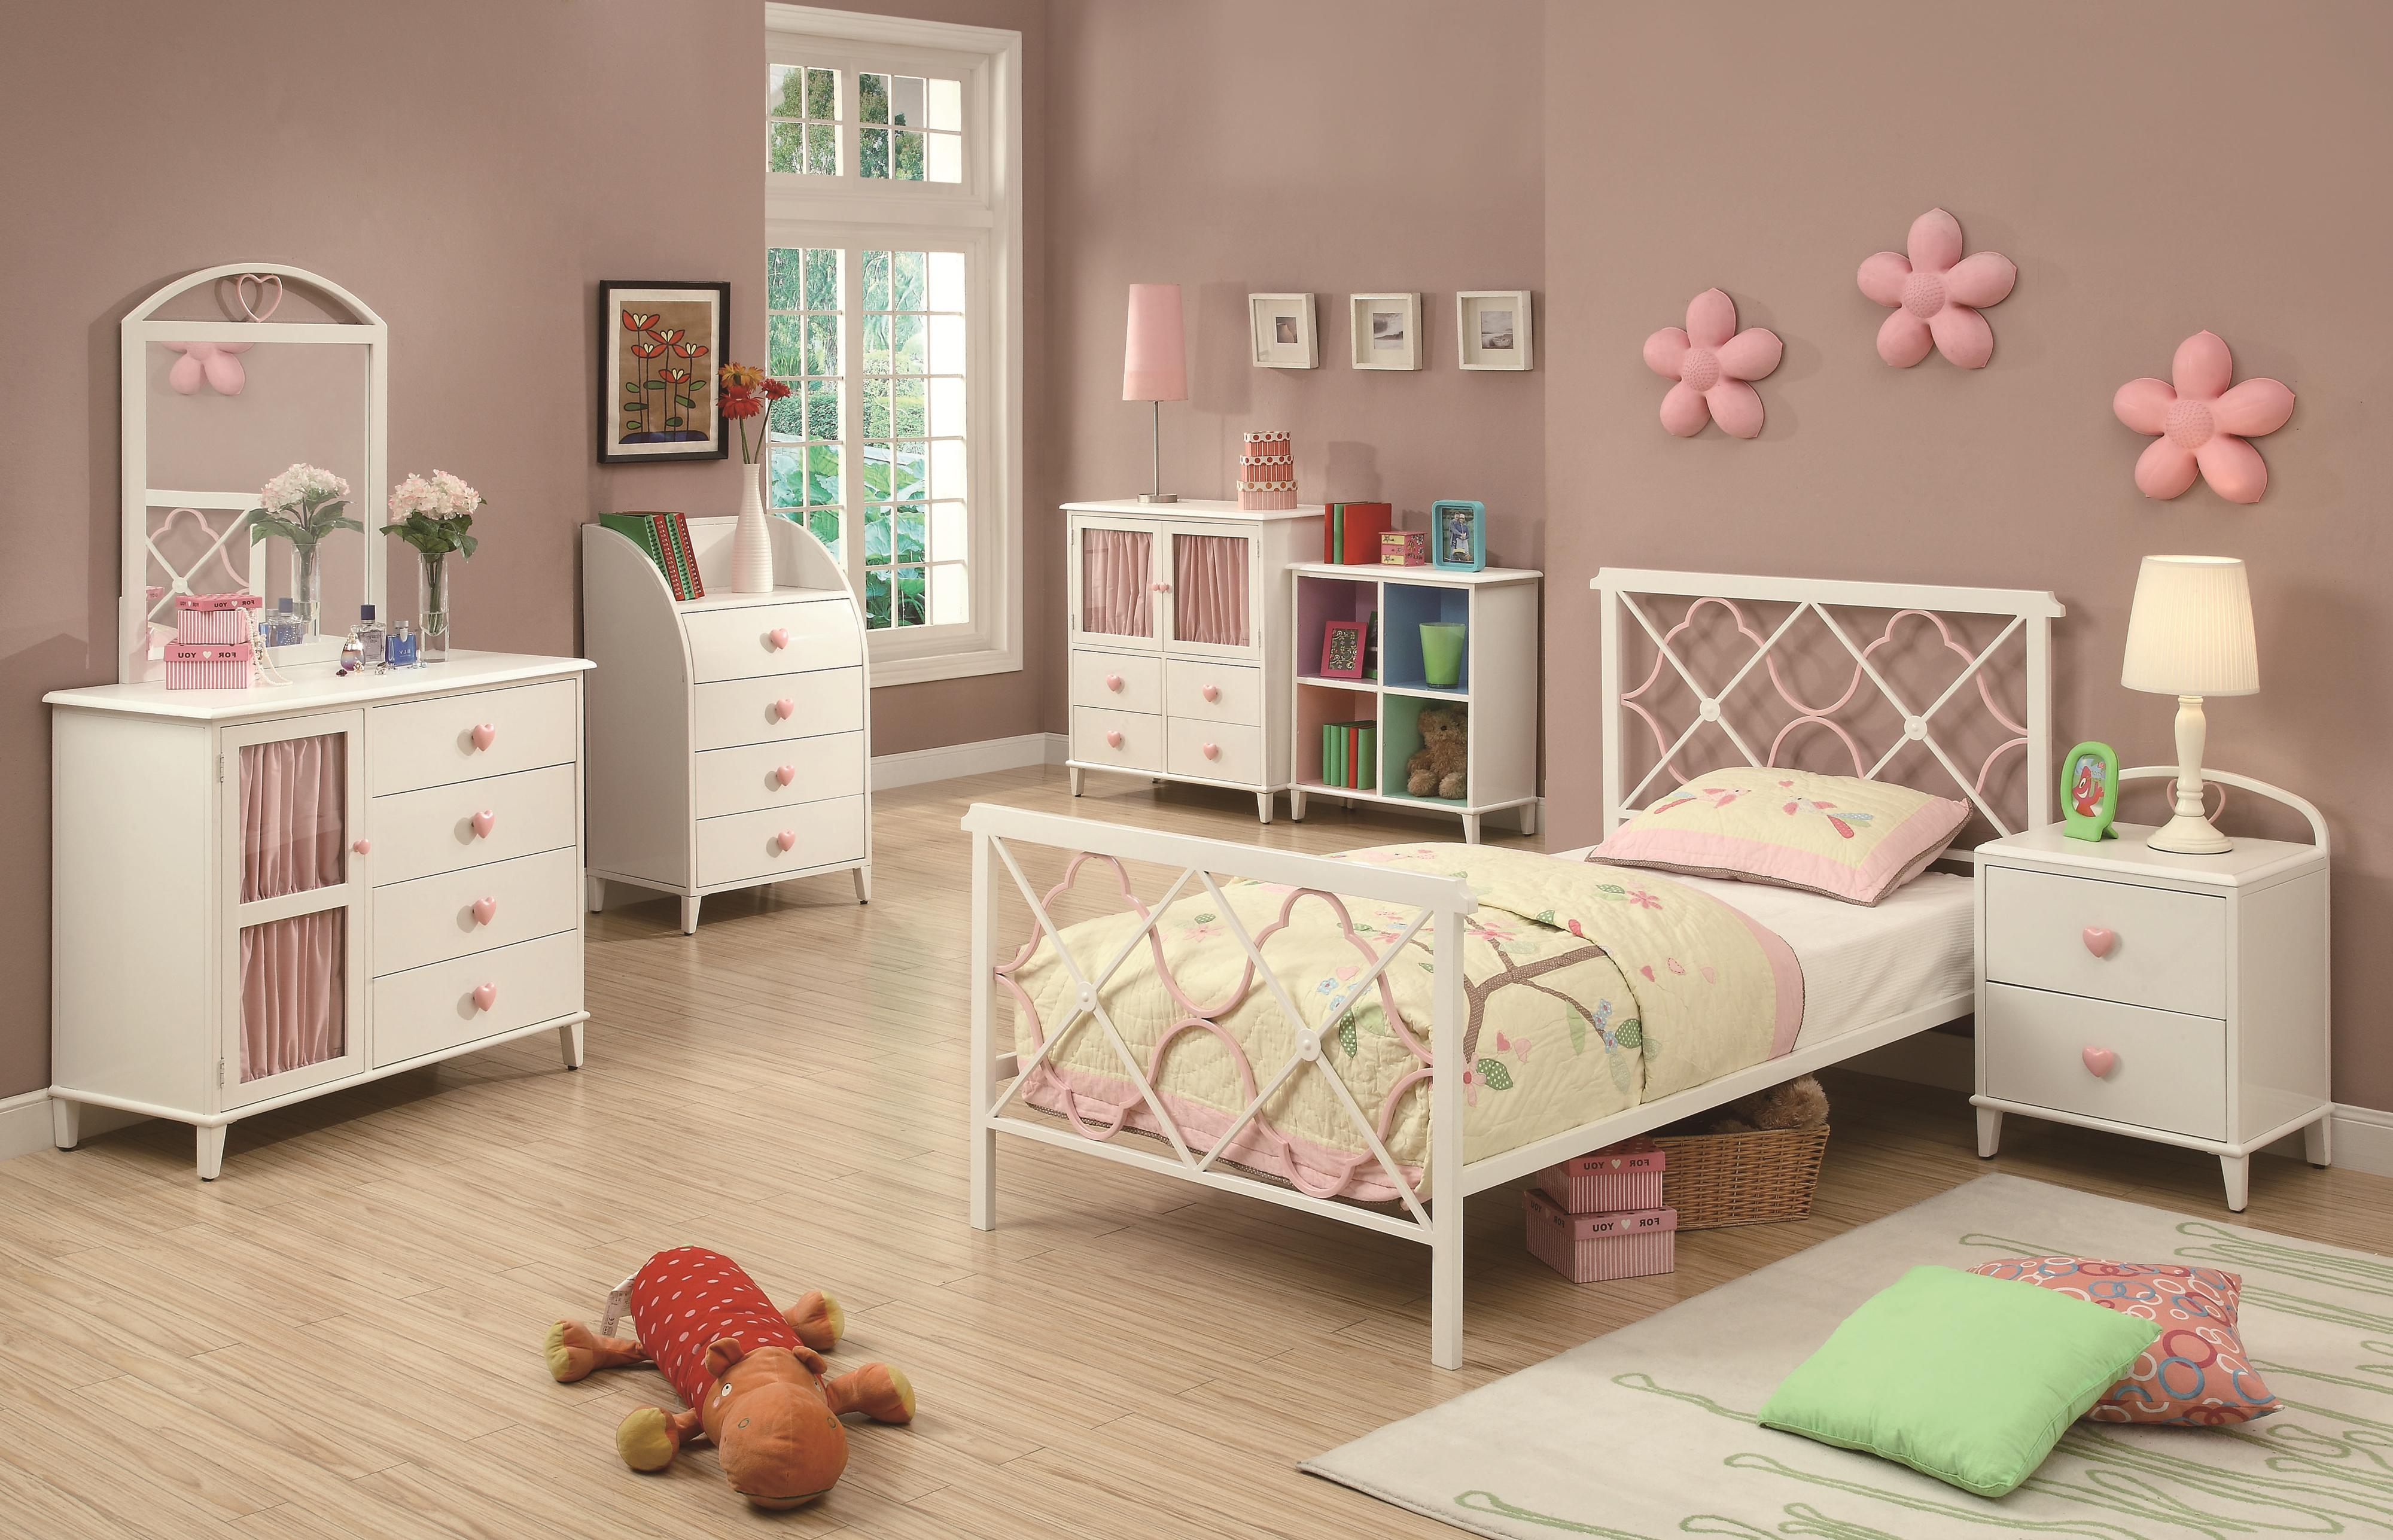 Twin Bed W/ Metal Headboard U0026 Footboard W/ Pink Quatrefoil Motifs    Juliette By Coaster   Wilcox Furniture   Panel Beds Corpus Christi,  Kingsville, ...